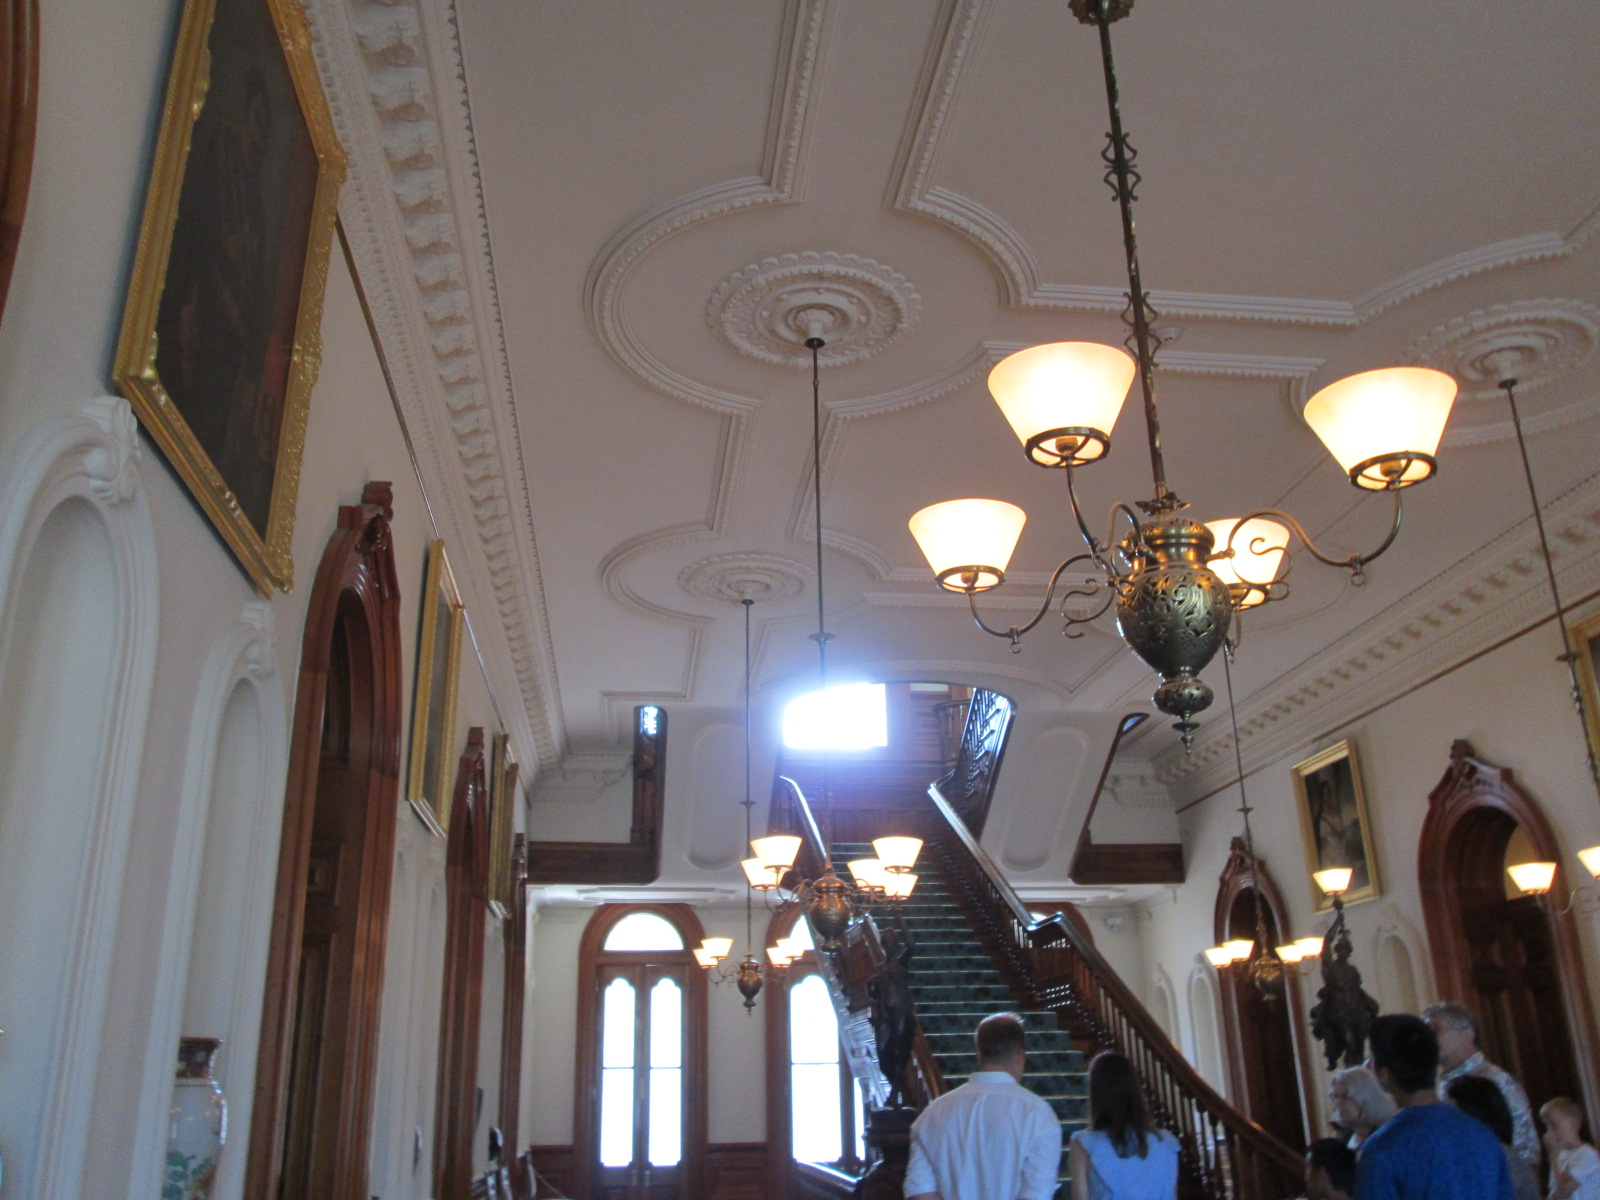 staircase with lights.jpg